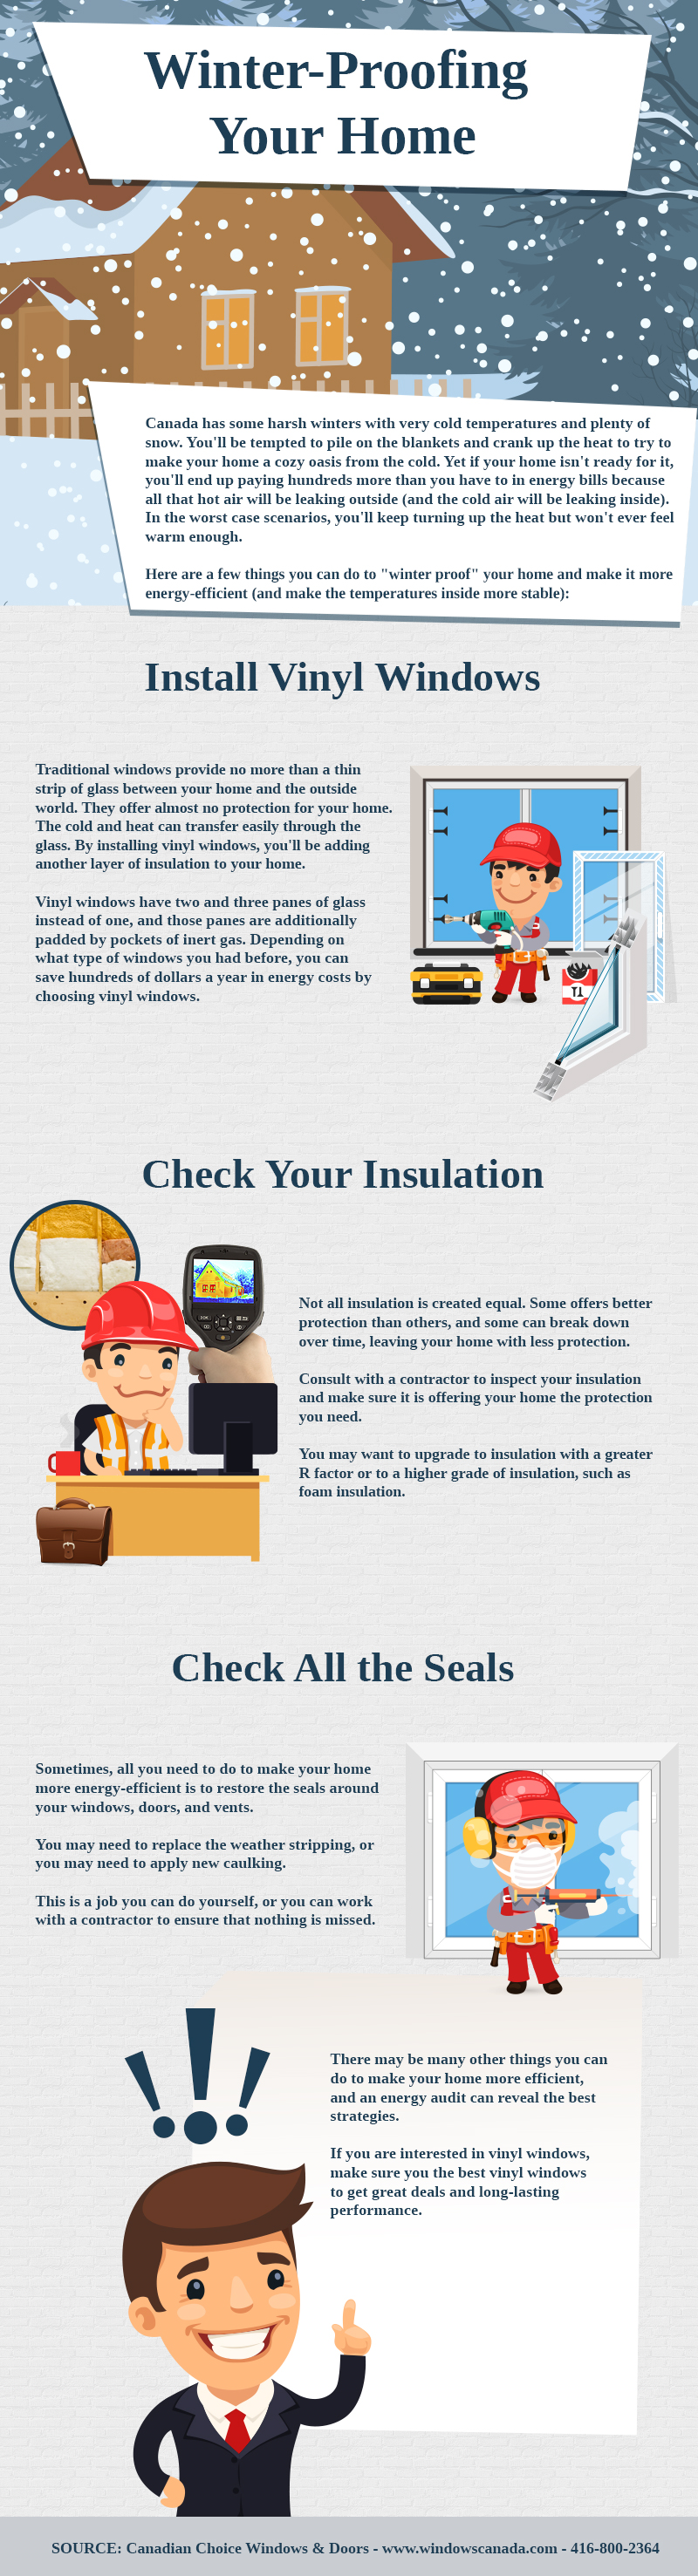 How to Winter-Proof Your Home - Infographic